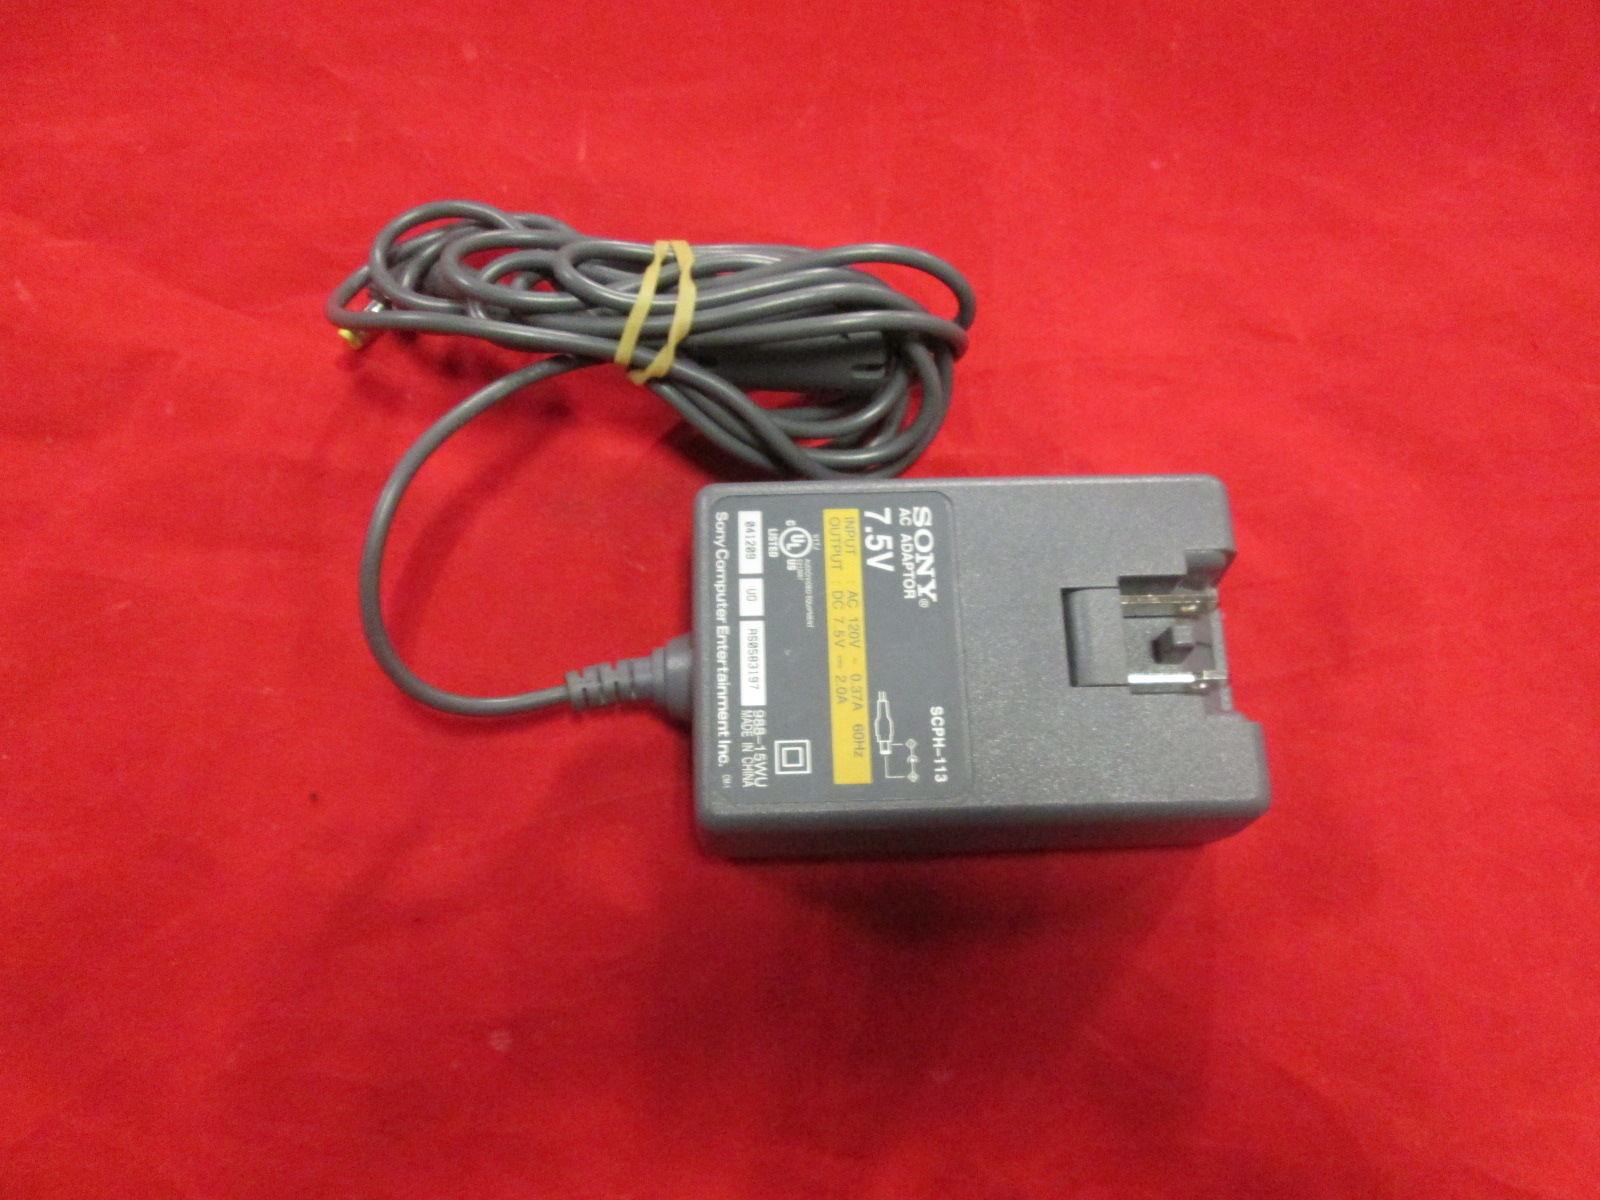 Sony OEM AC Adaptor 7.5V 2.0A SCPH-113 Adapter PlayStation Ps One